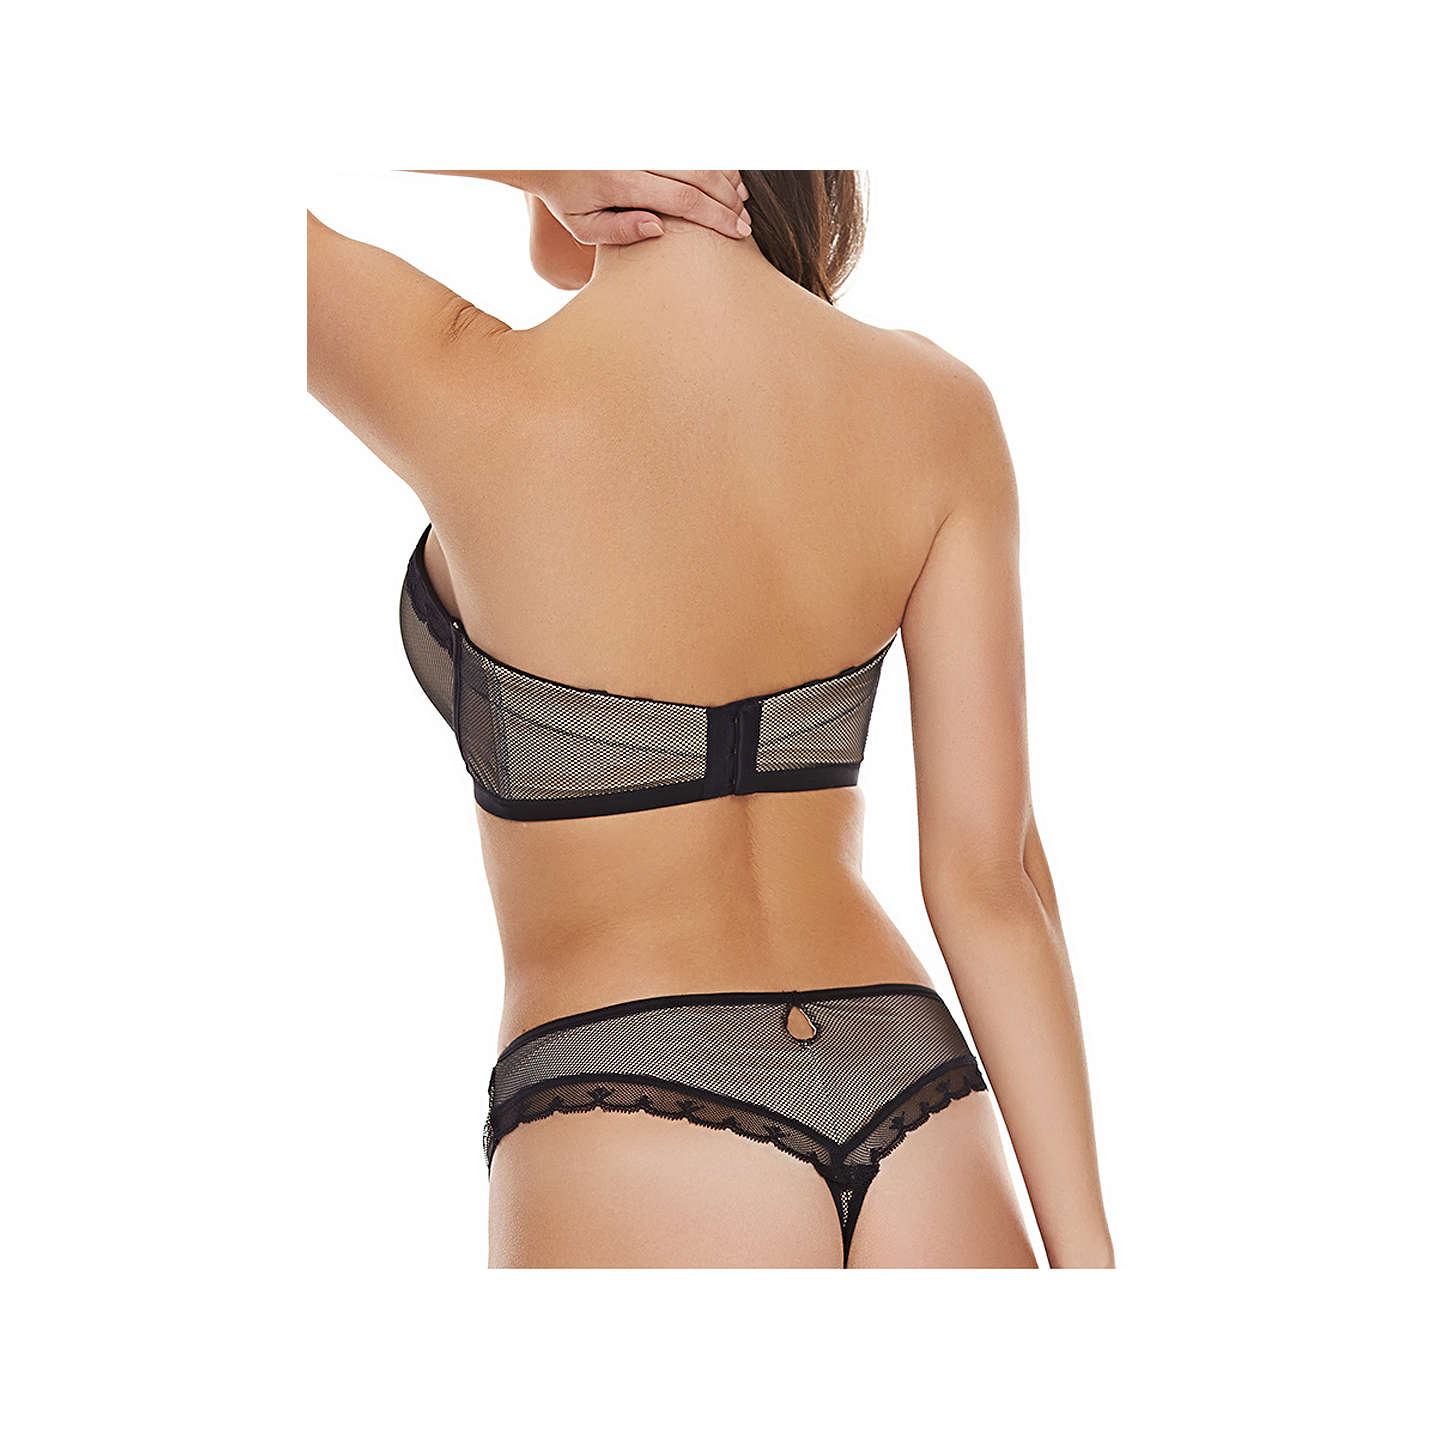 BuyFreya Idol Allure Moulded Strapless Bra, Black, 30DD Online at johnlewis.com